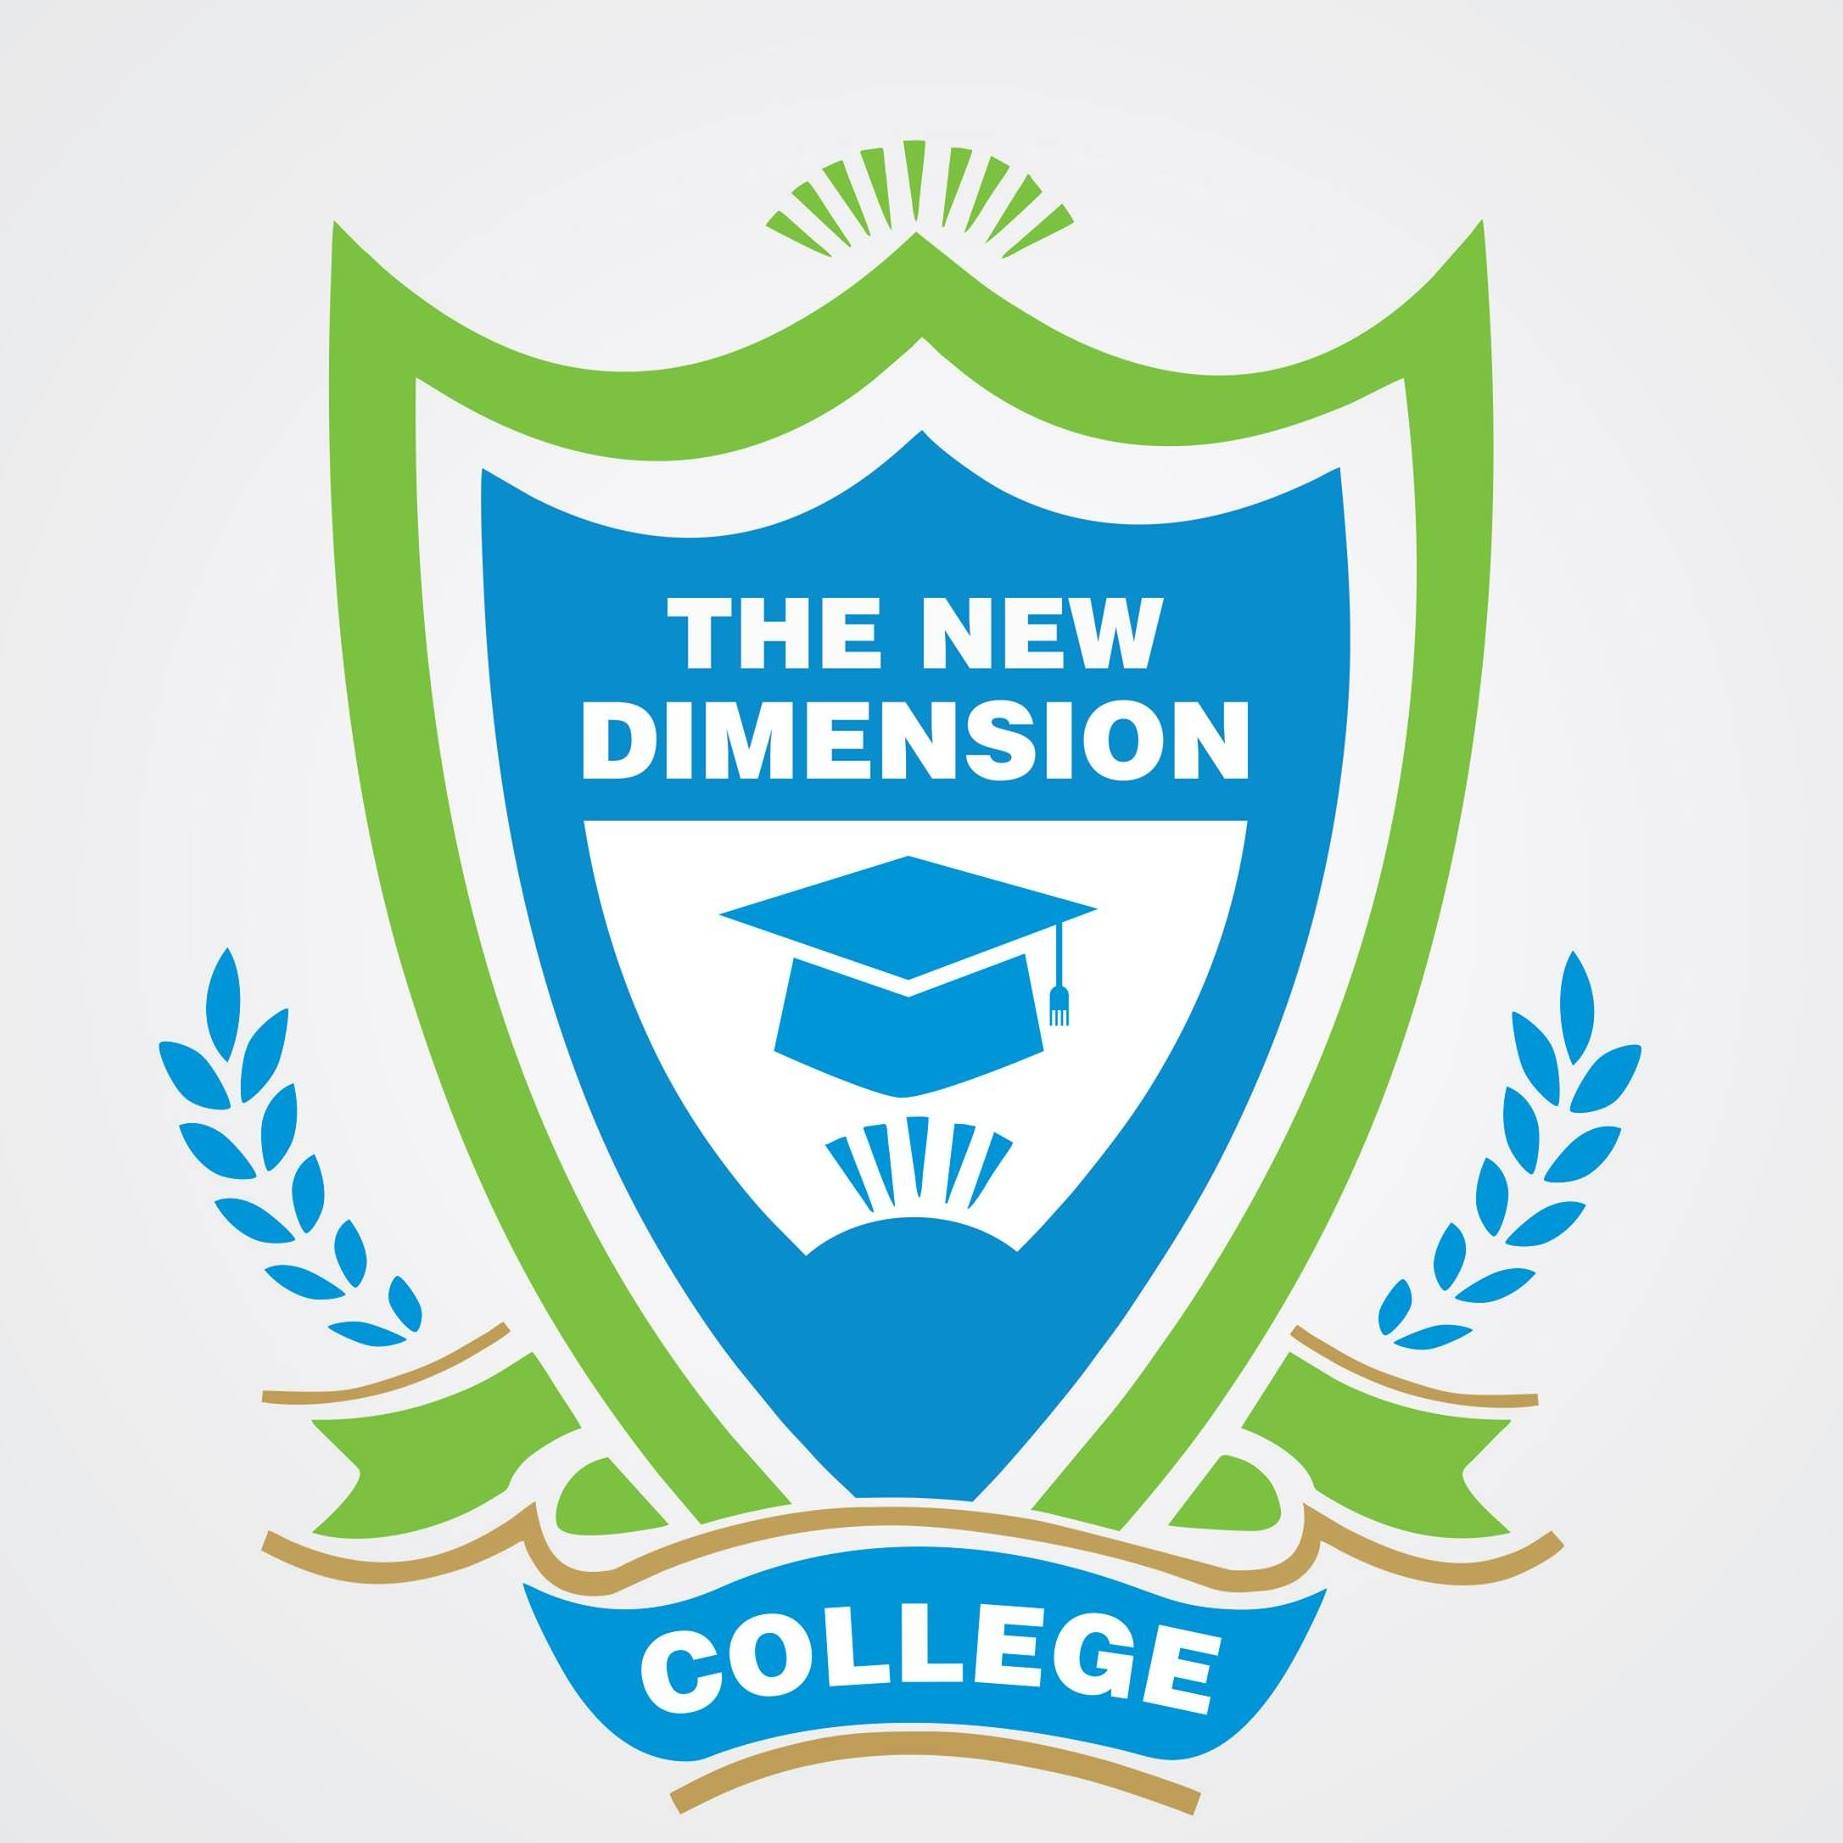 The New Dimension College